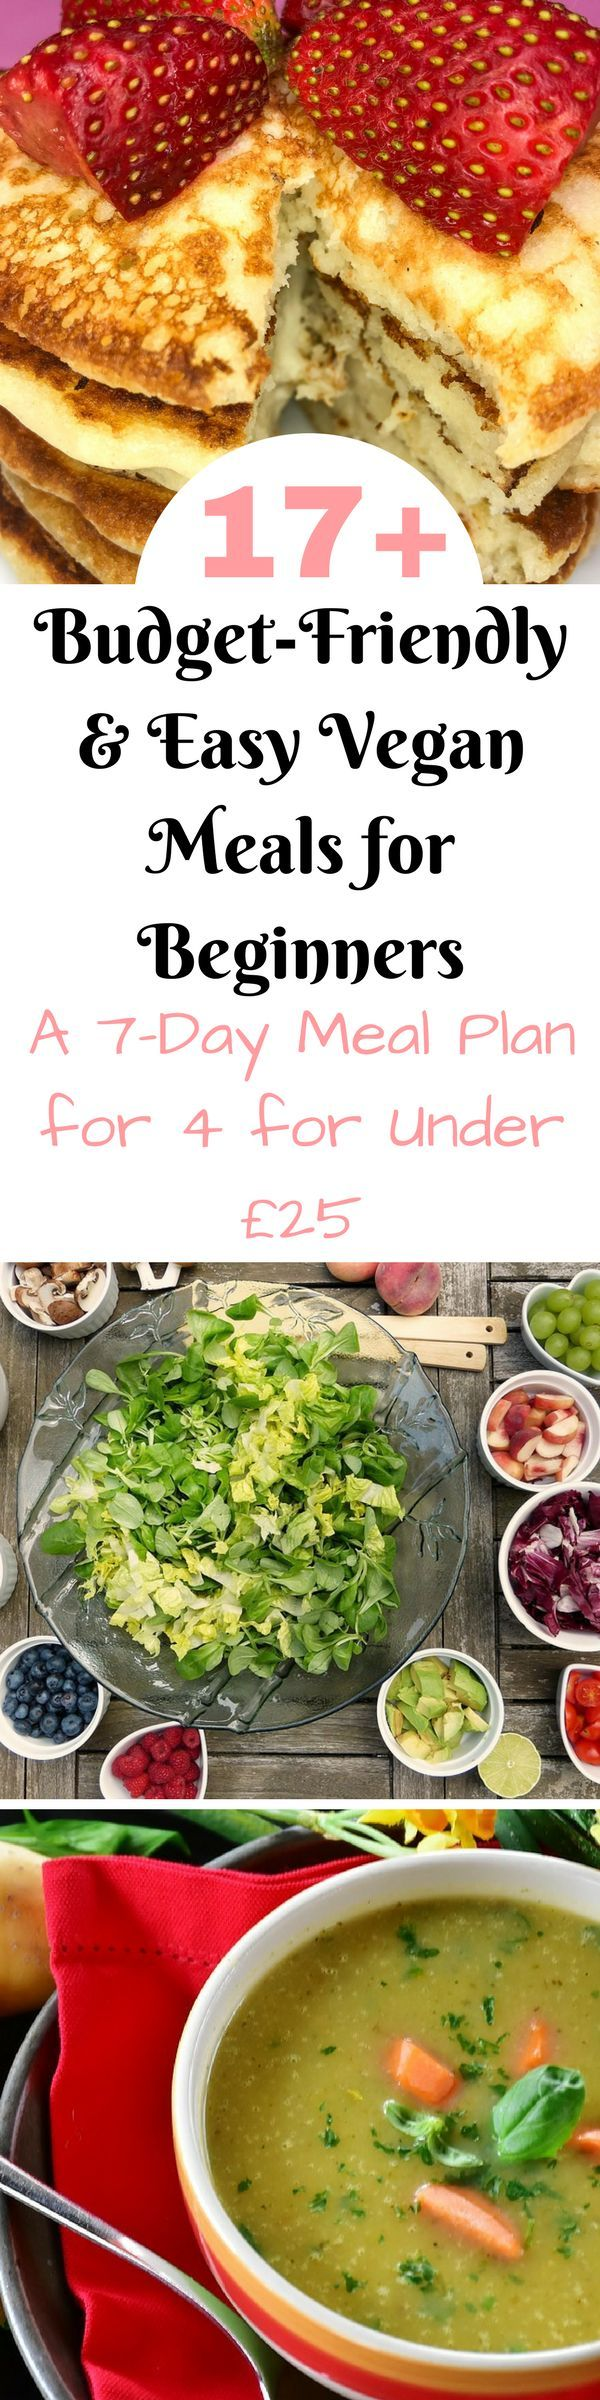 17 budget friendly and easy vegan meals for beginners. Here's a whole week's meal plan and vegan grocery list on a budget. Coming in at under £25 for the whole family. #VeganGroceryList #VeganGroceryListOnABudget #VeganForBeginners #VeganMealPlan